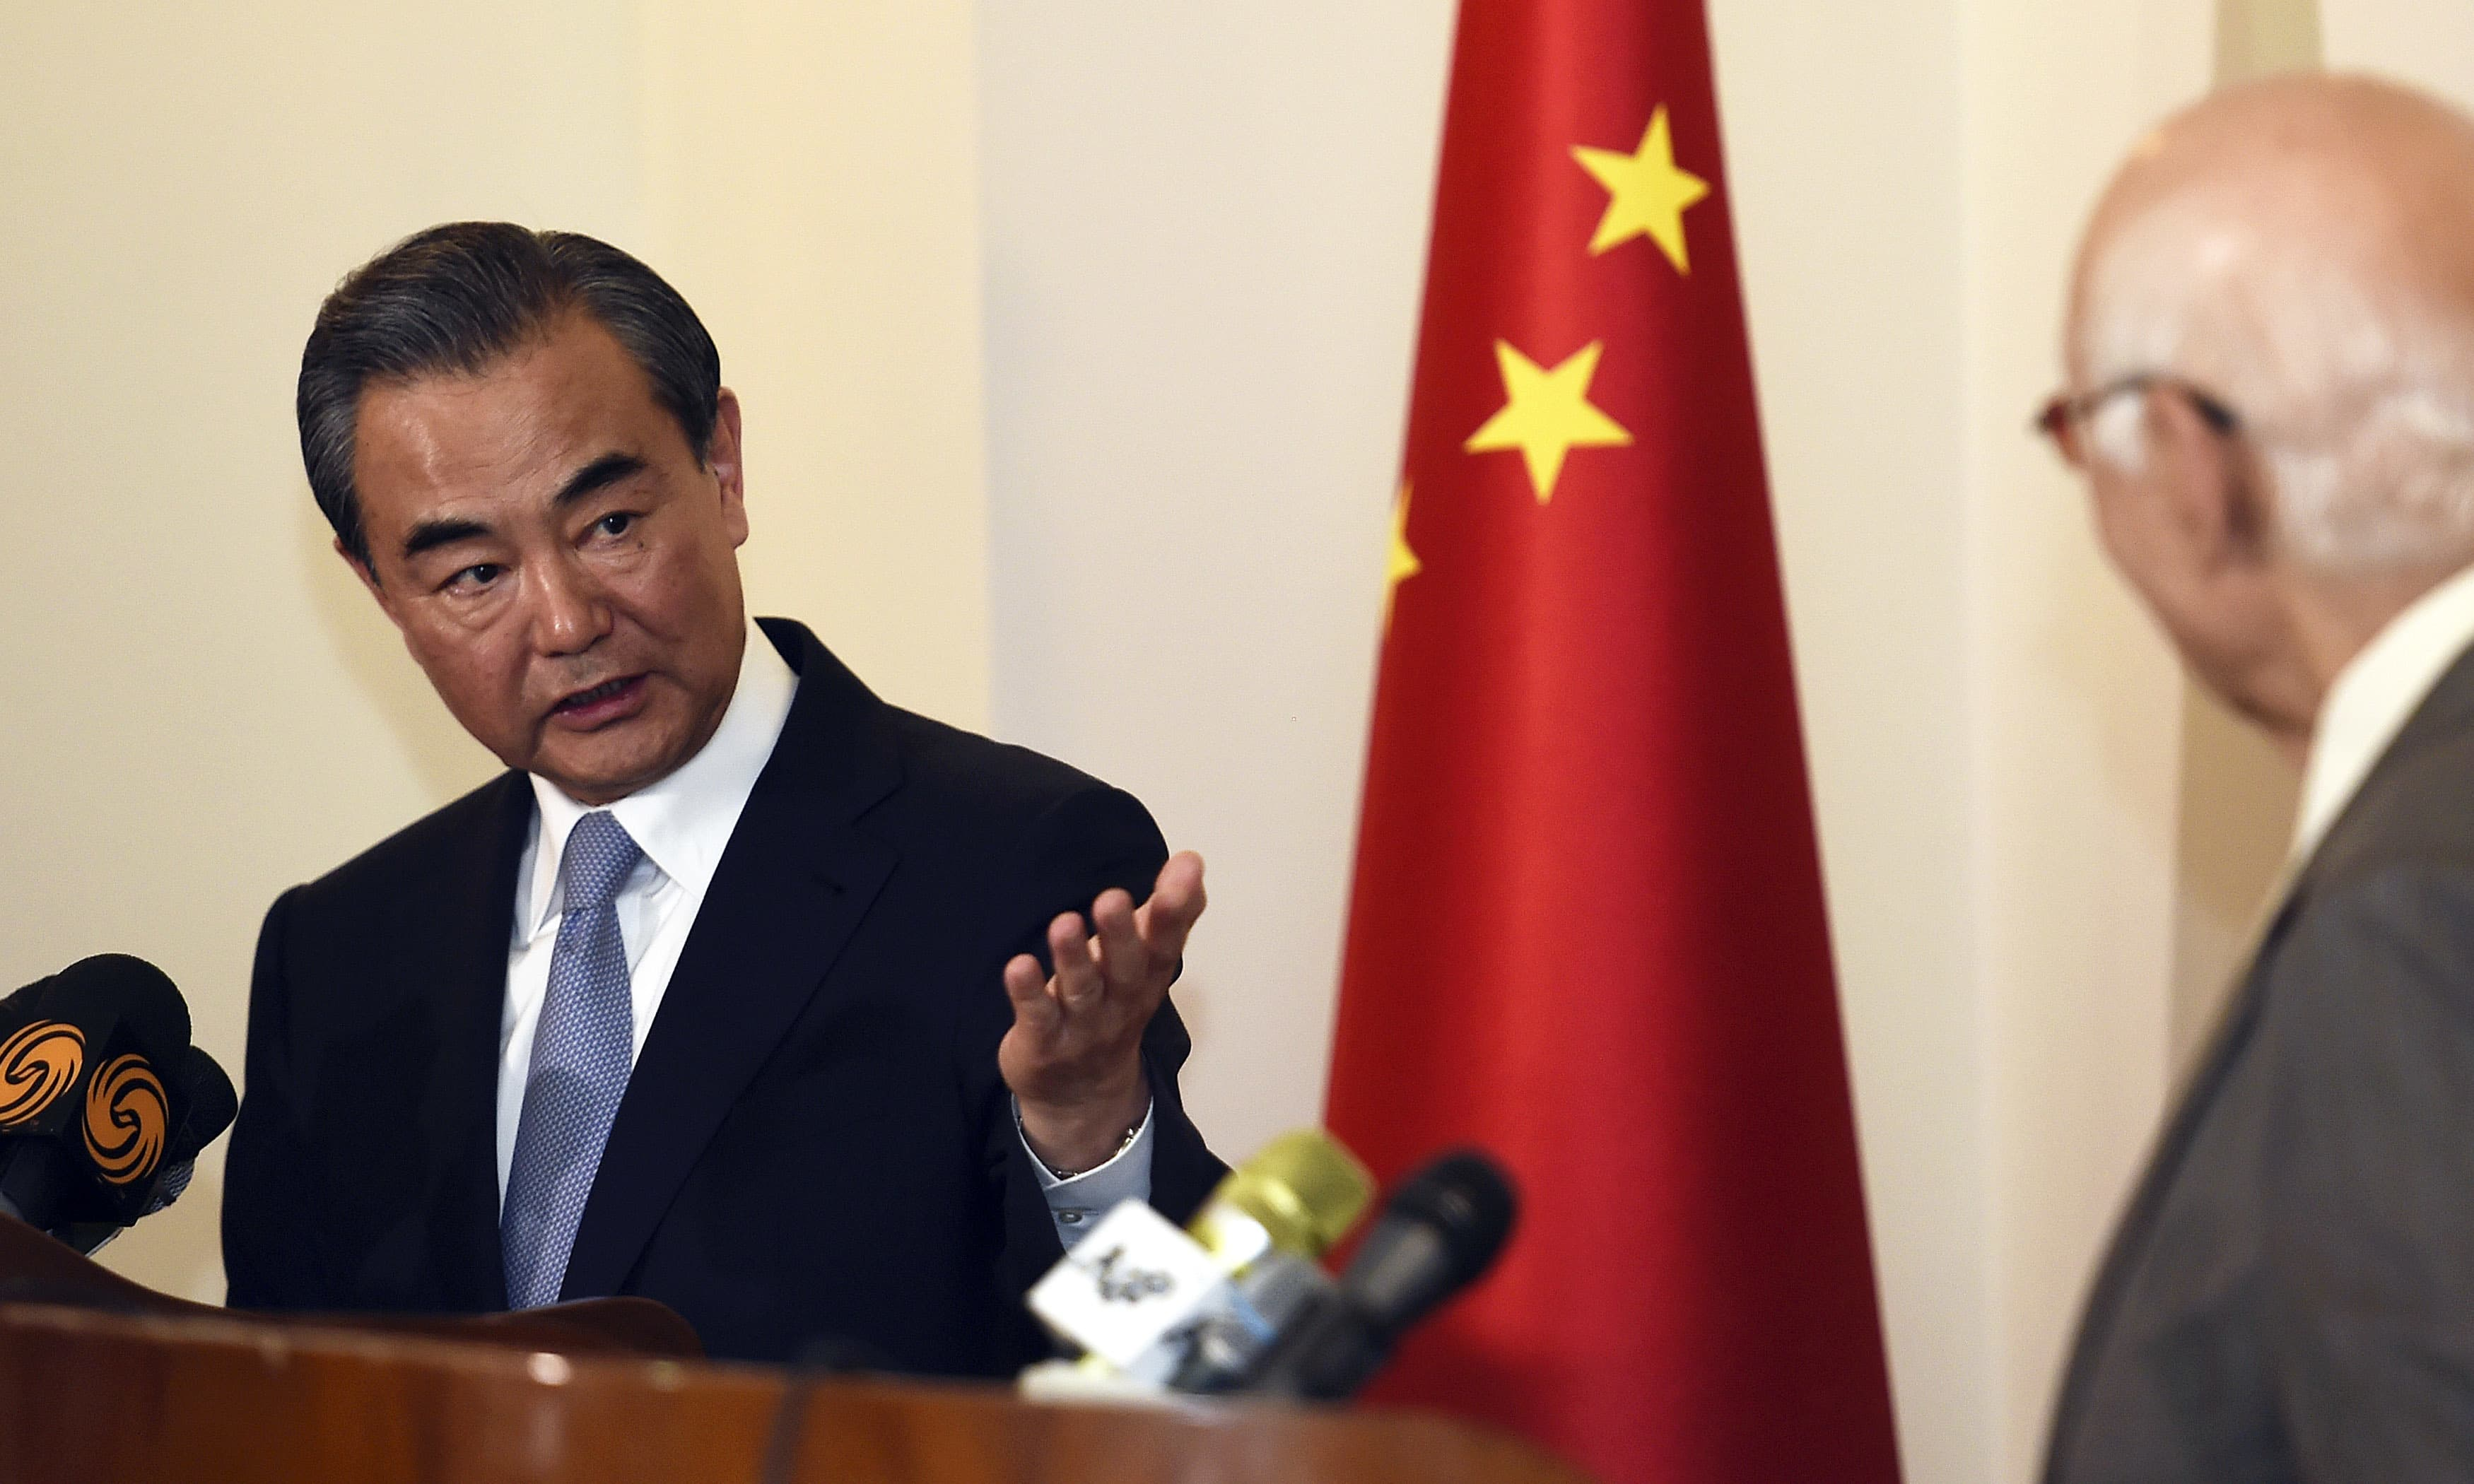 Chinese Foreign Minister Wang Yi gestures to Sartaj Aziz during a press conference in Rawalpindi. —AP